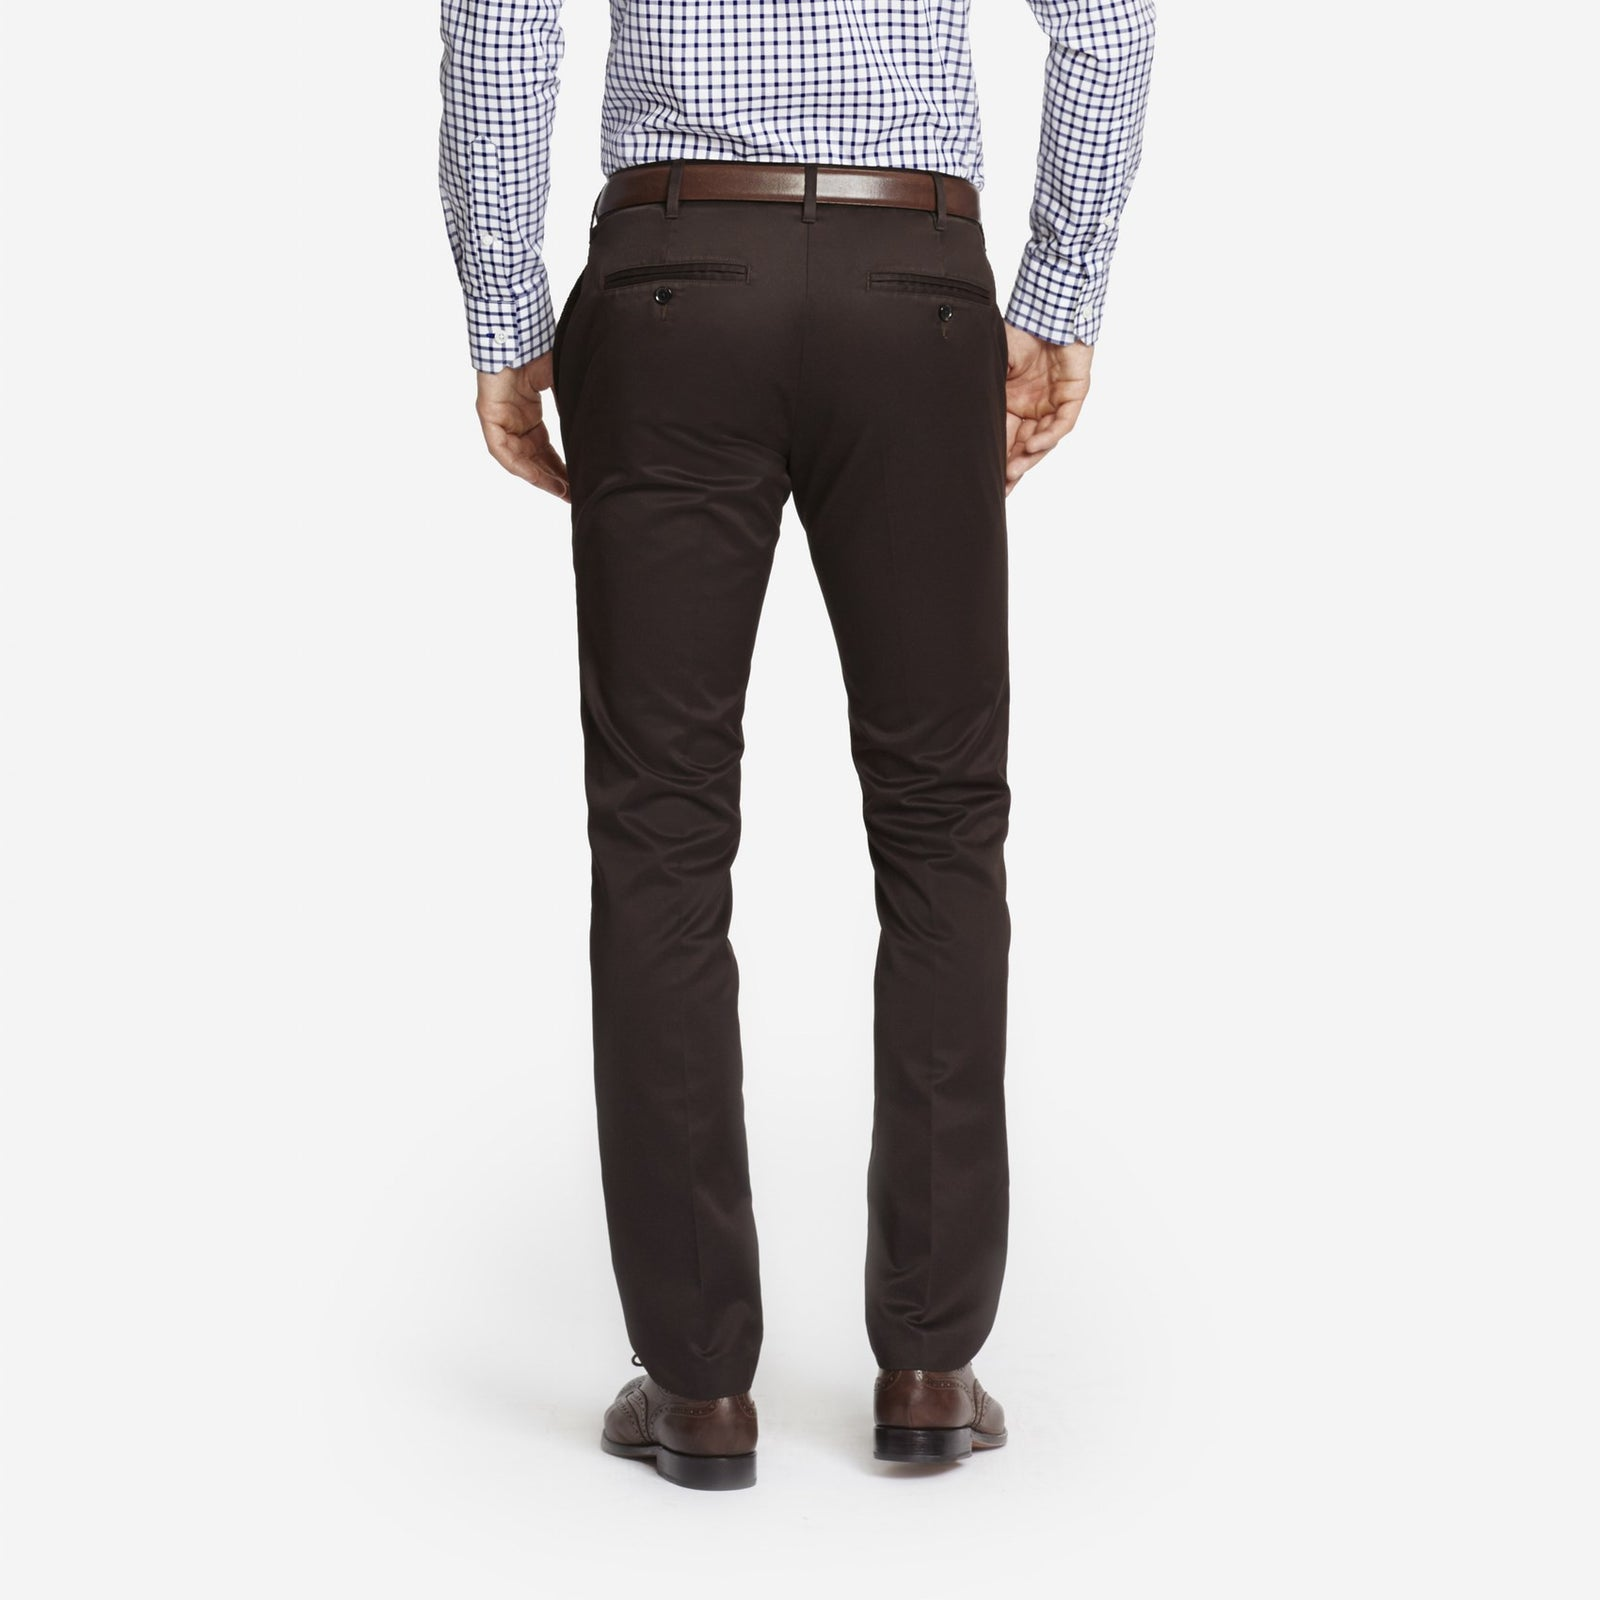 Dark Brown Bespoke Tailored Cotton Trousers